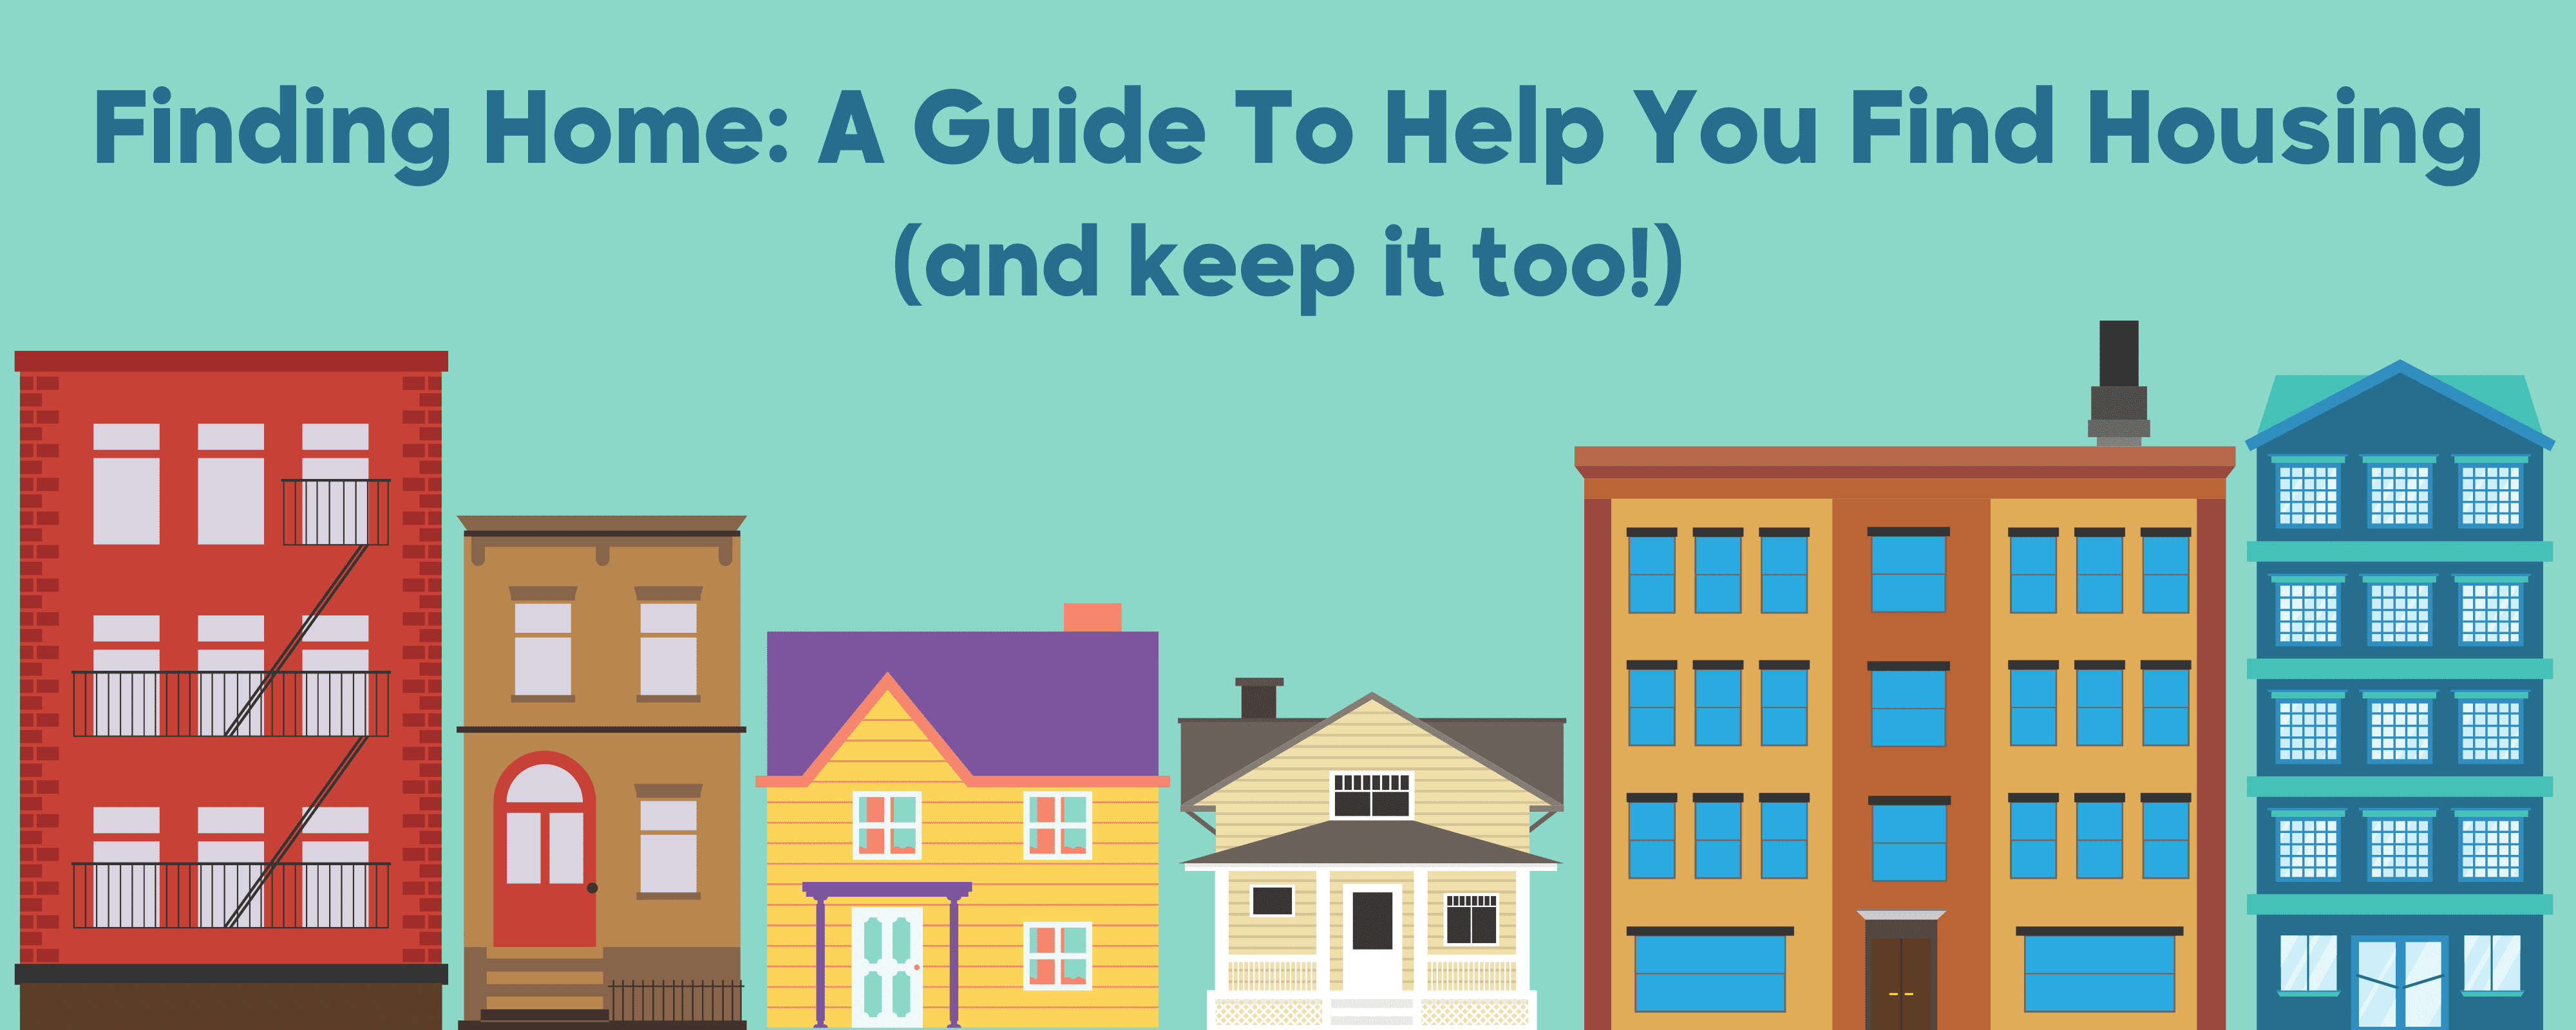 """cartoon image of a series of apartment buildings and houses with the words """"Finding Home: A Guide To Help You Find Housing (and keep it too!)"""""""